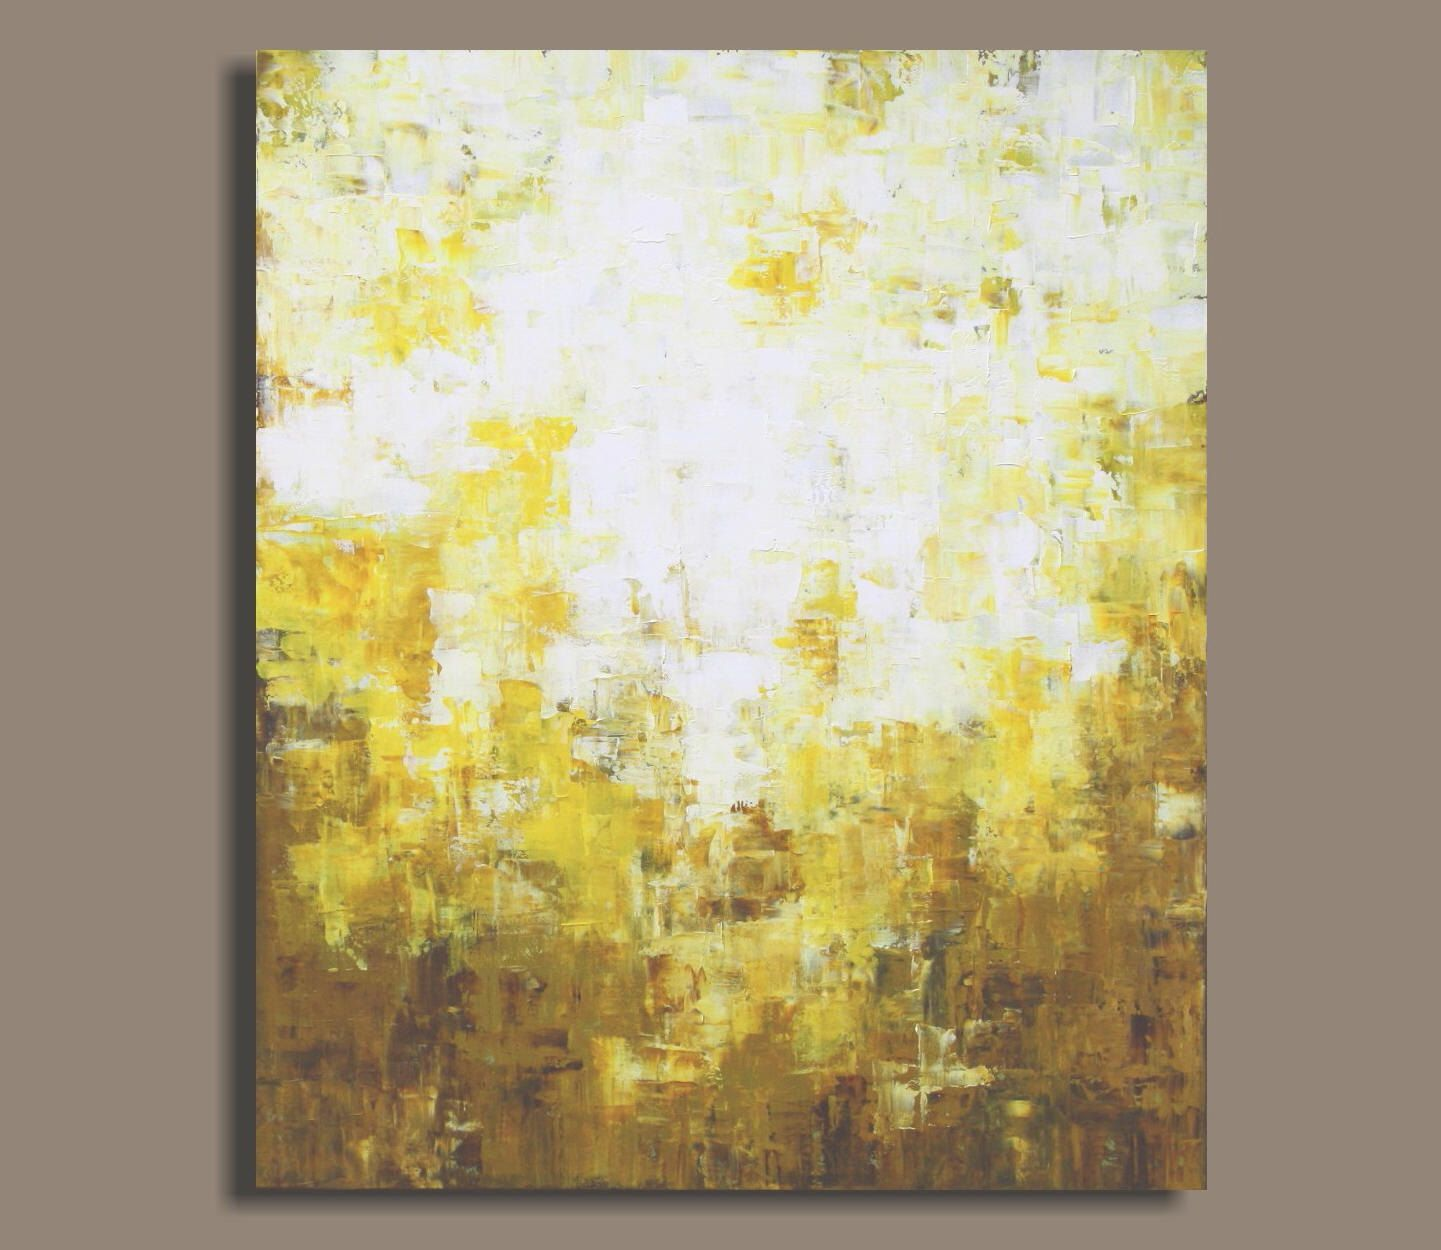 Huge Abstract Painting in Yellow and Earthtones - A Play of Light ...